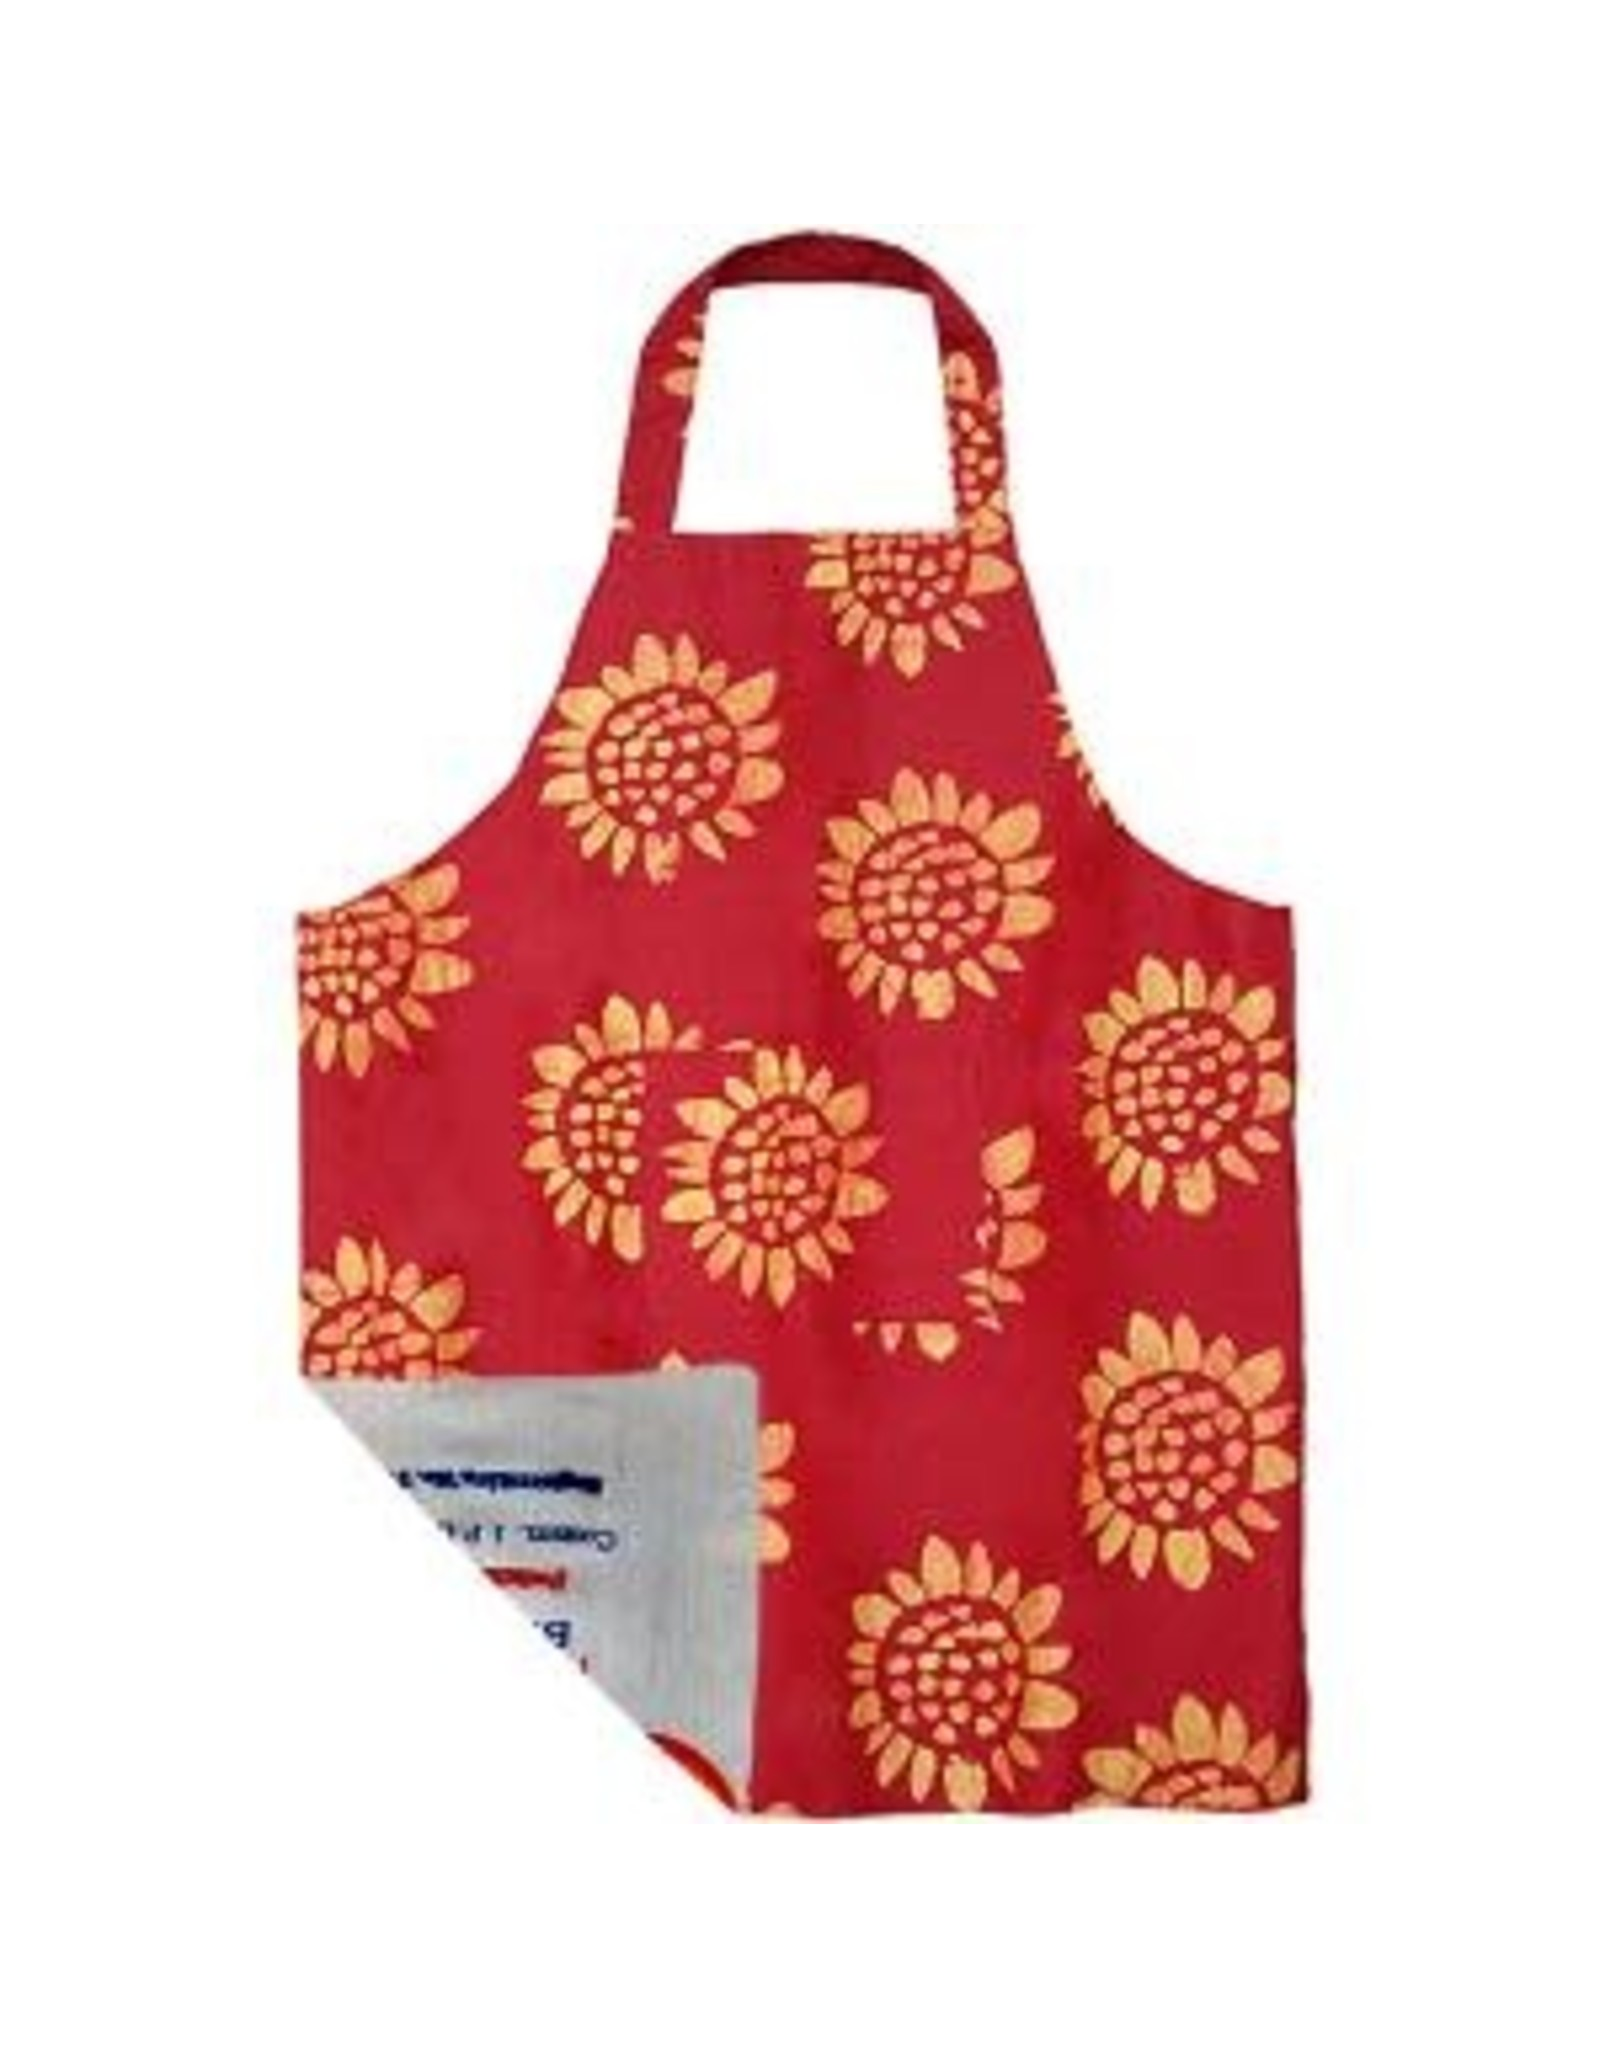 Reversible Apron, Sunflower Red